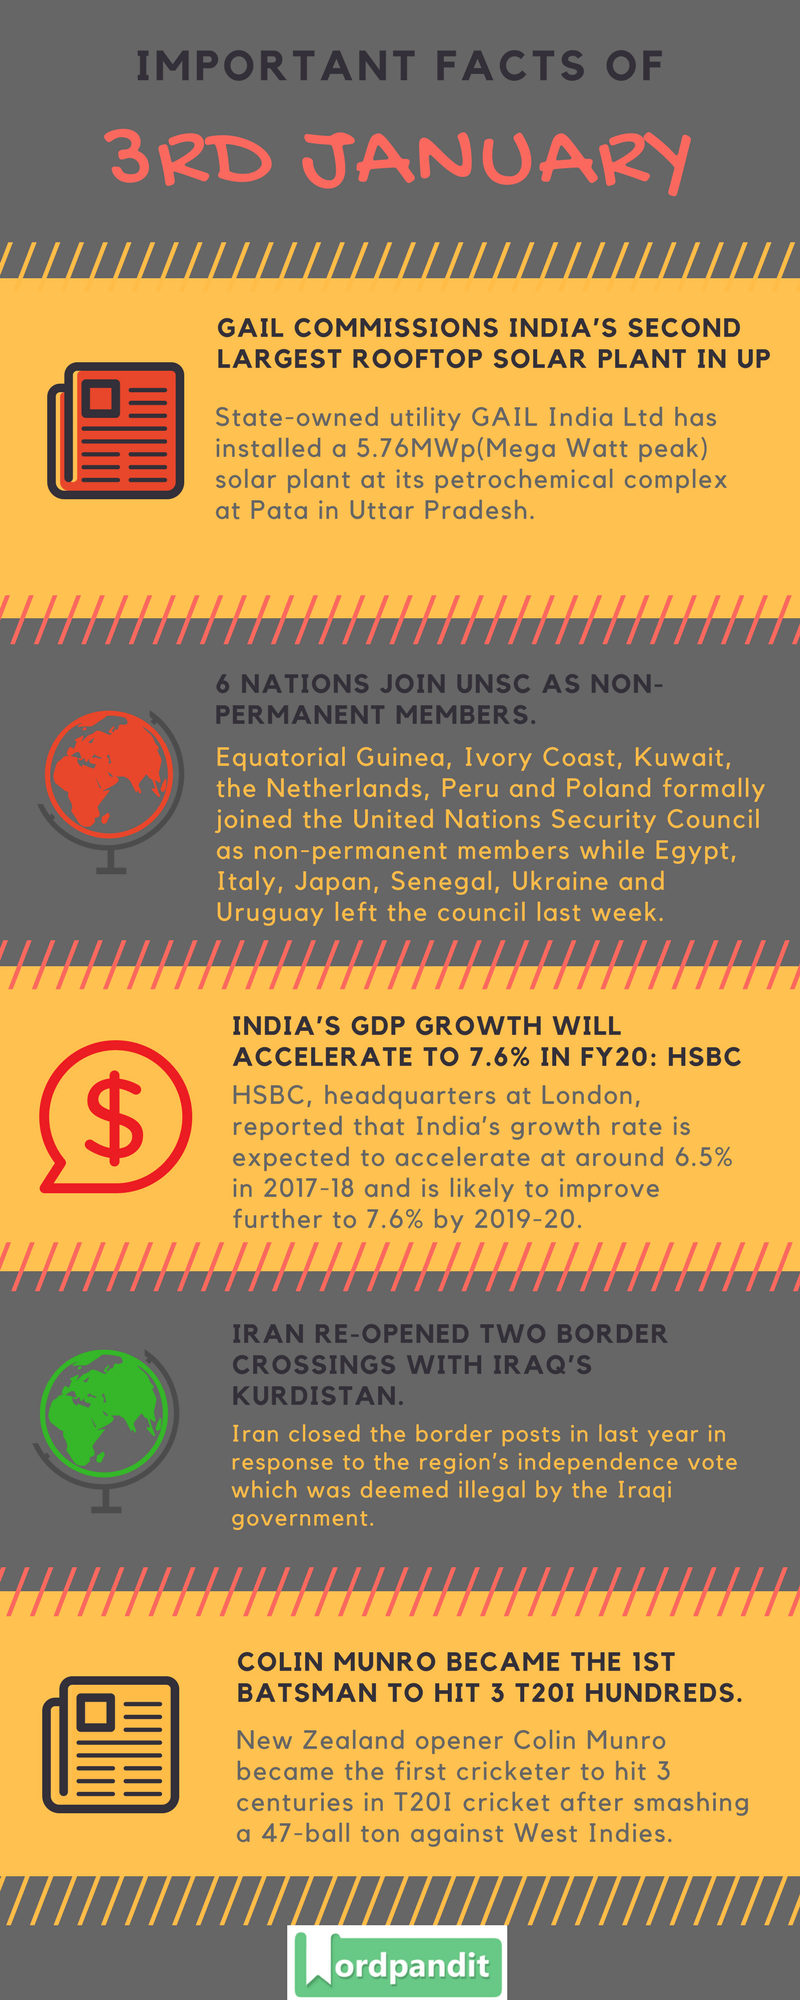 Daily Current Affairs 3 january 2018 Current Affairs Quiz january 3 2018 Current Affairs Infographic